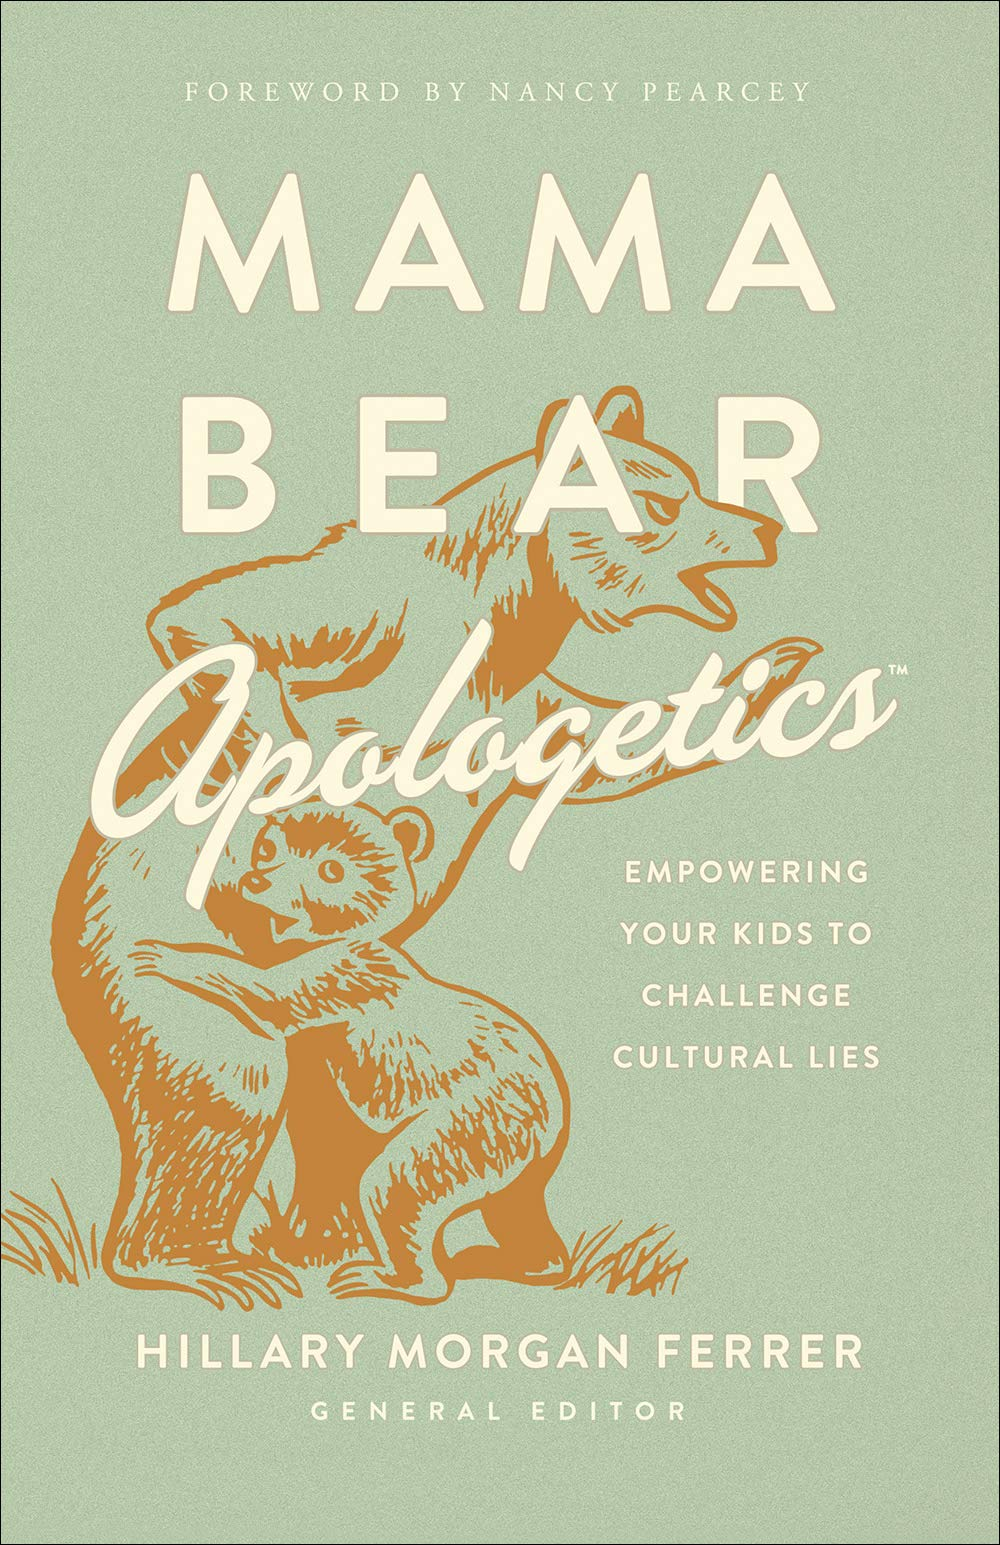 Mama Bear Apologetic: Empowering Your Kids to Challenge Cultural Lies by Hillary Morgan Ferrer